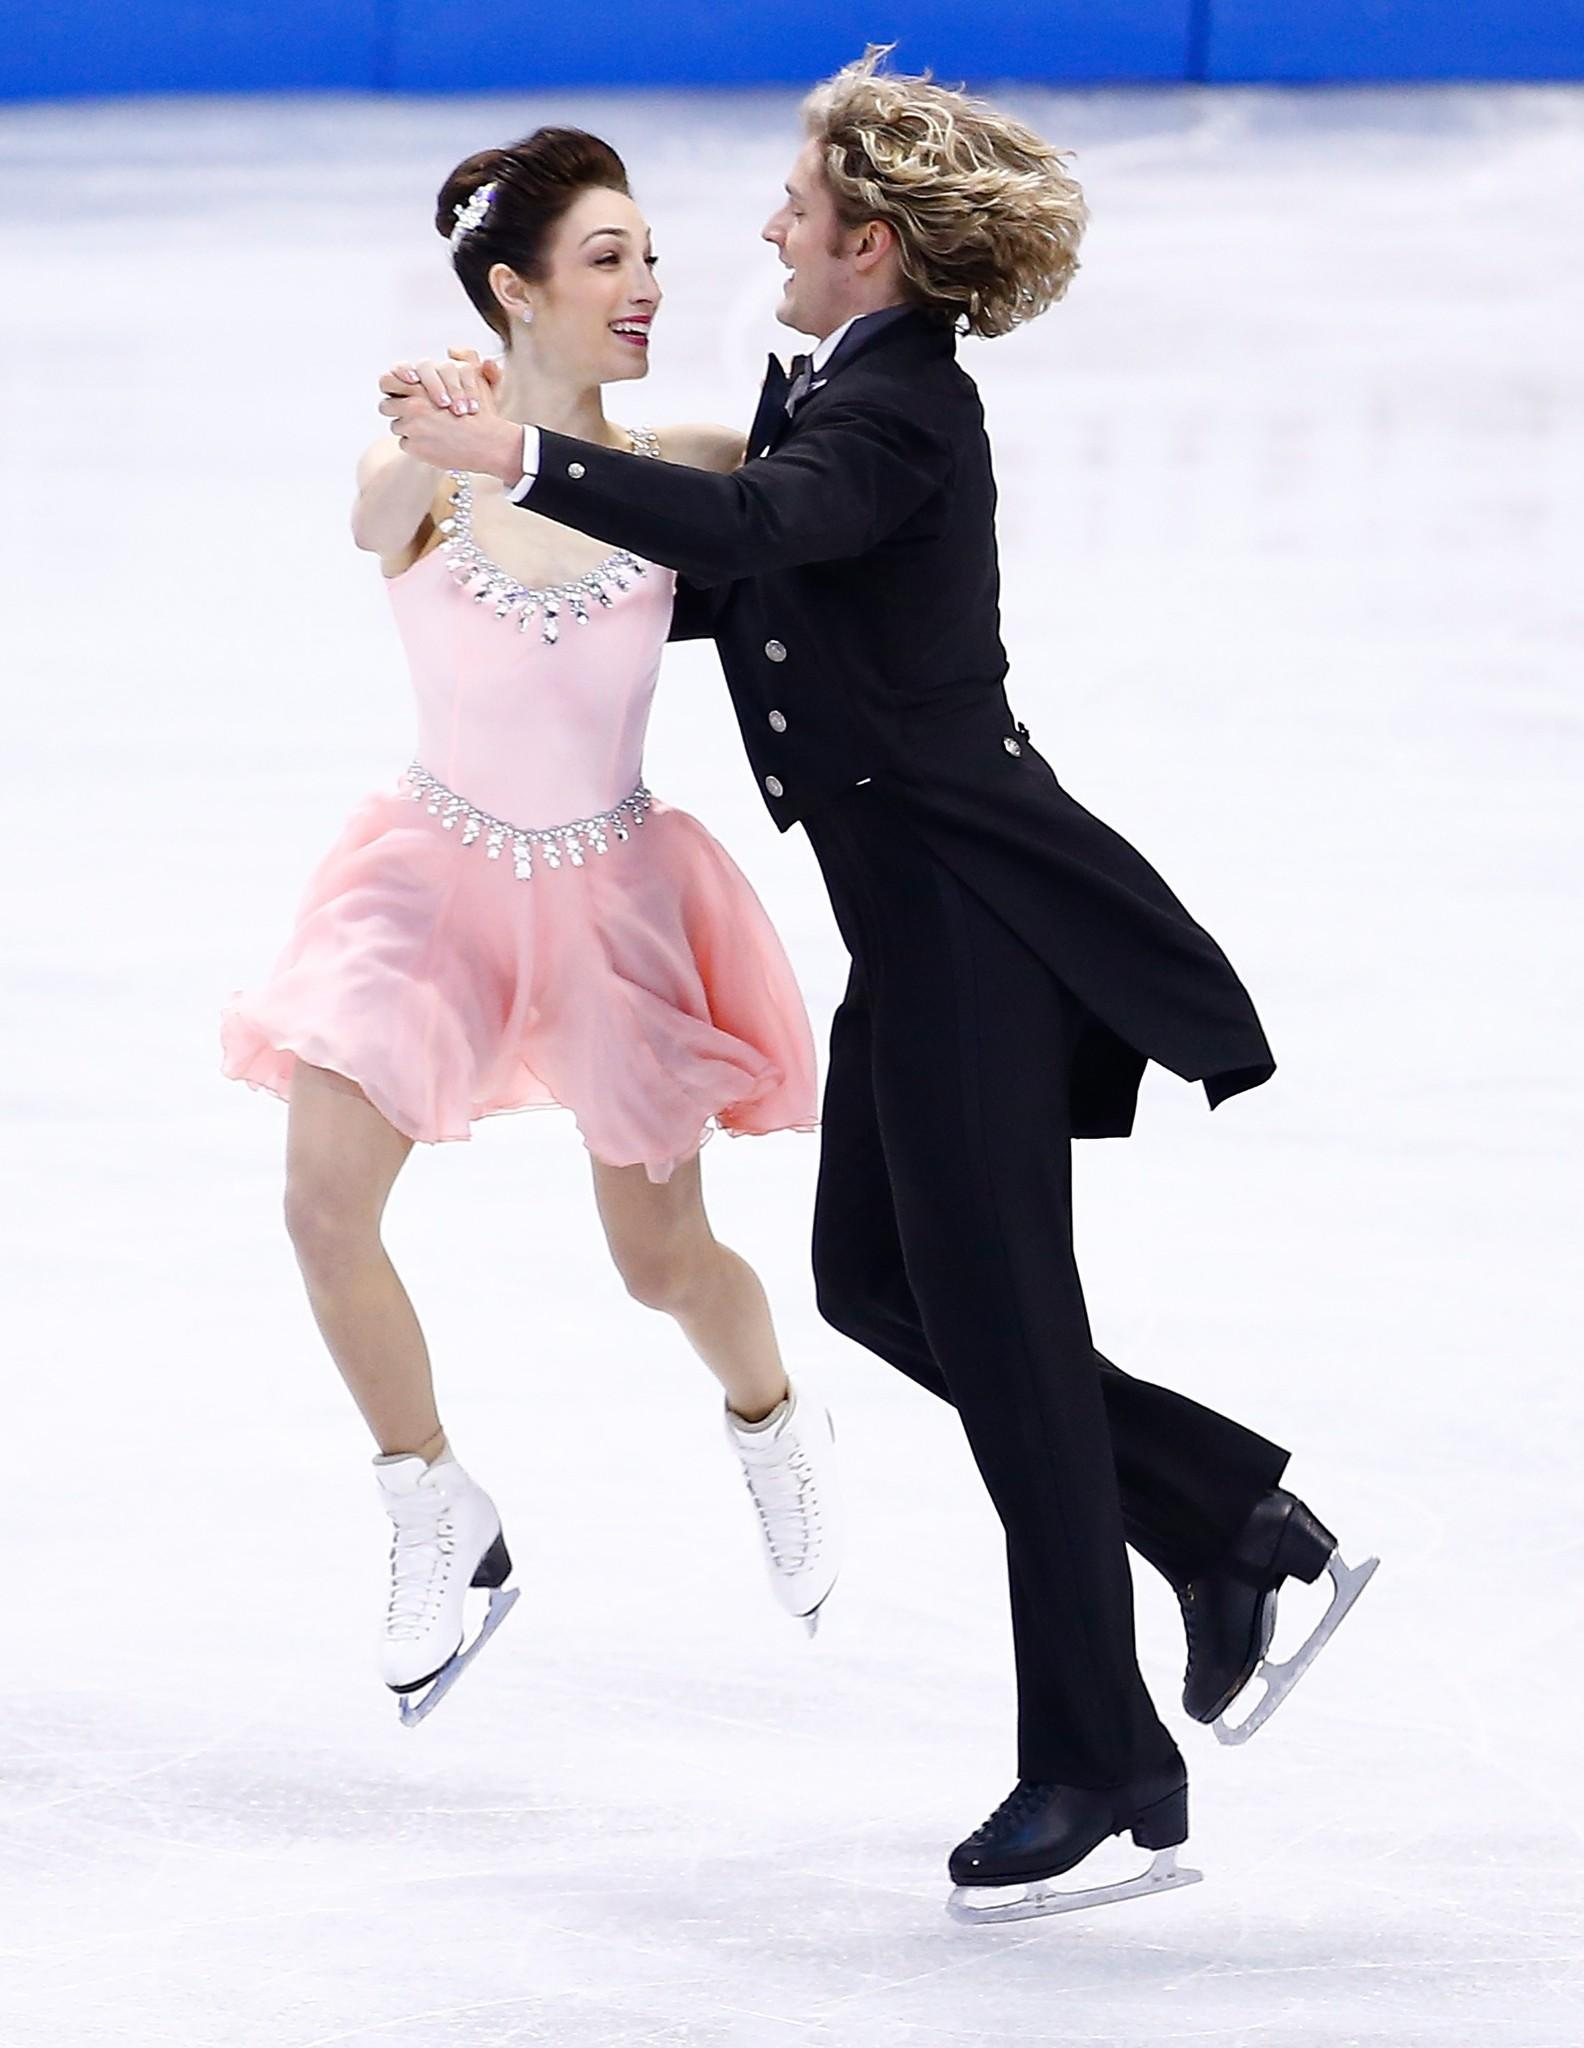 Meryl Davis and Charlie White winning Friday's short dance at the U.S. Championships.